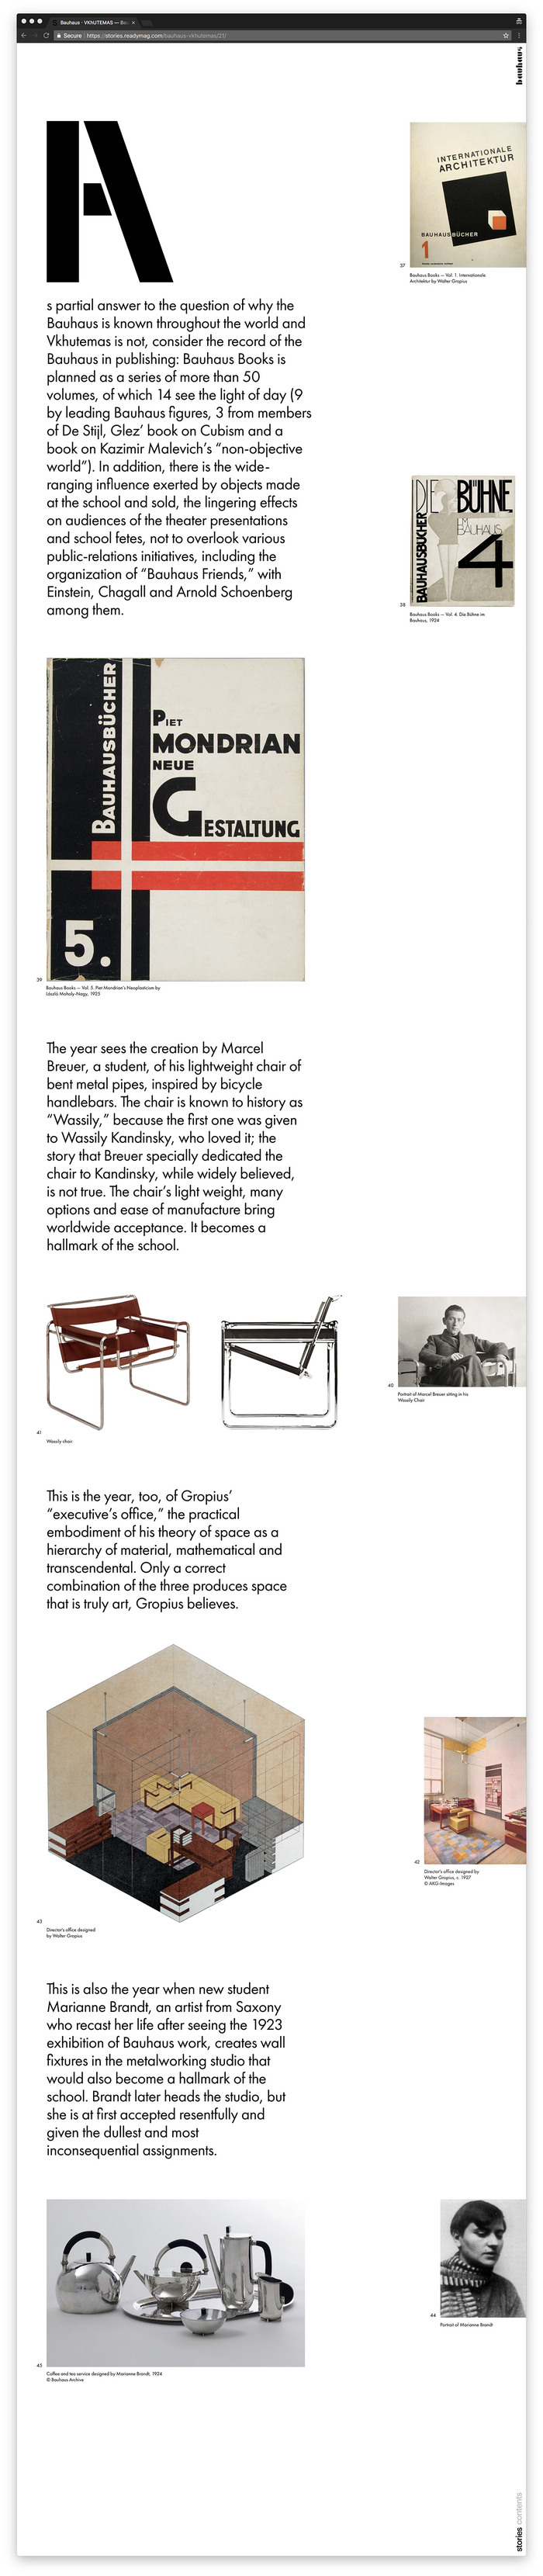 Readymag Stories: Bauhaus Vkhutemas 5